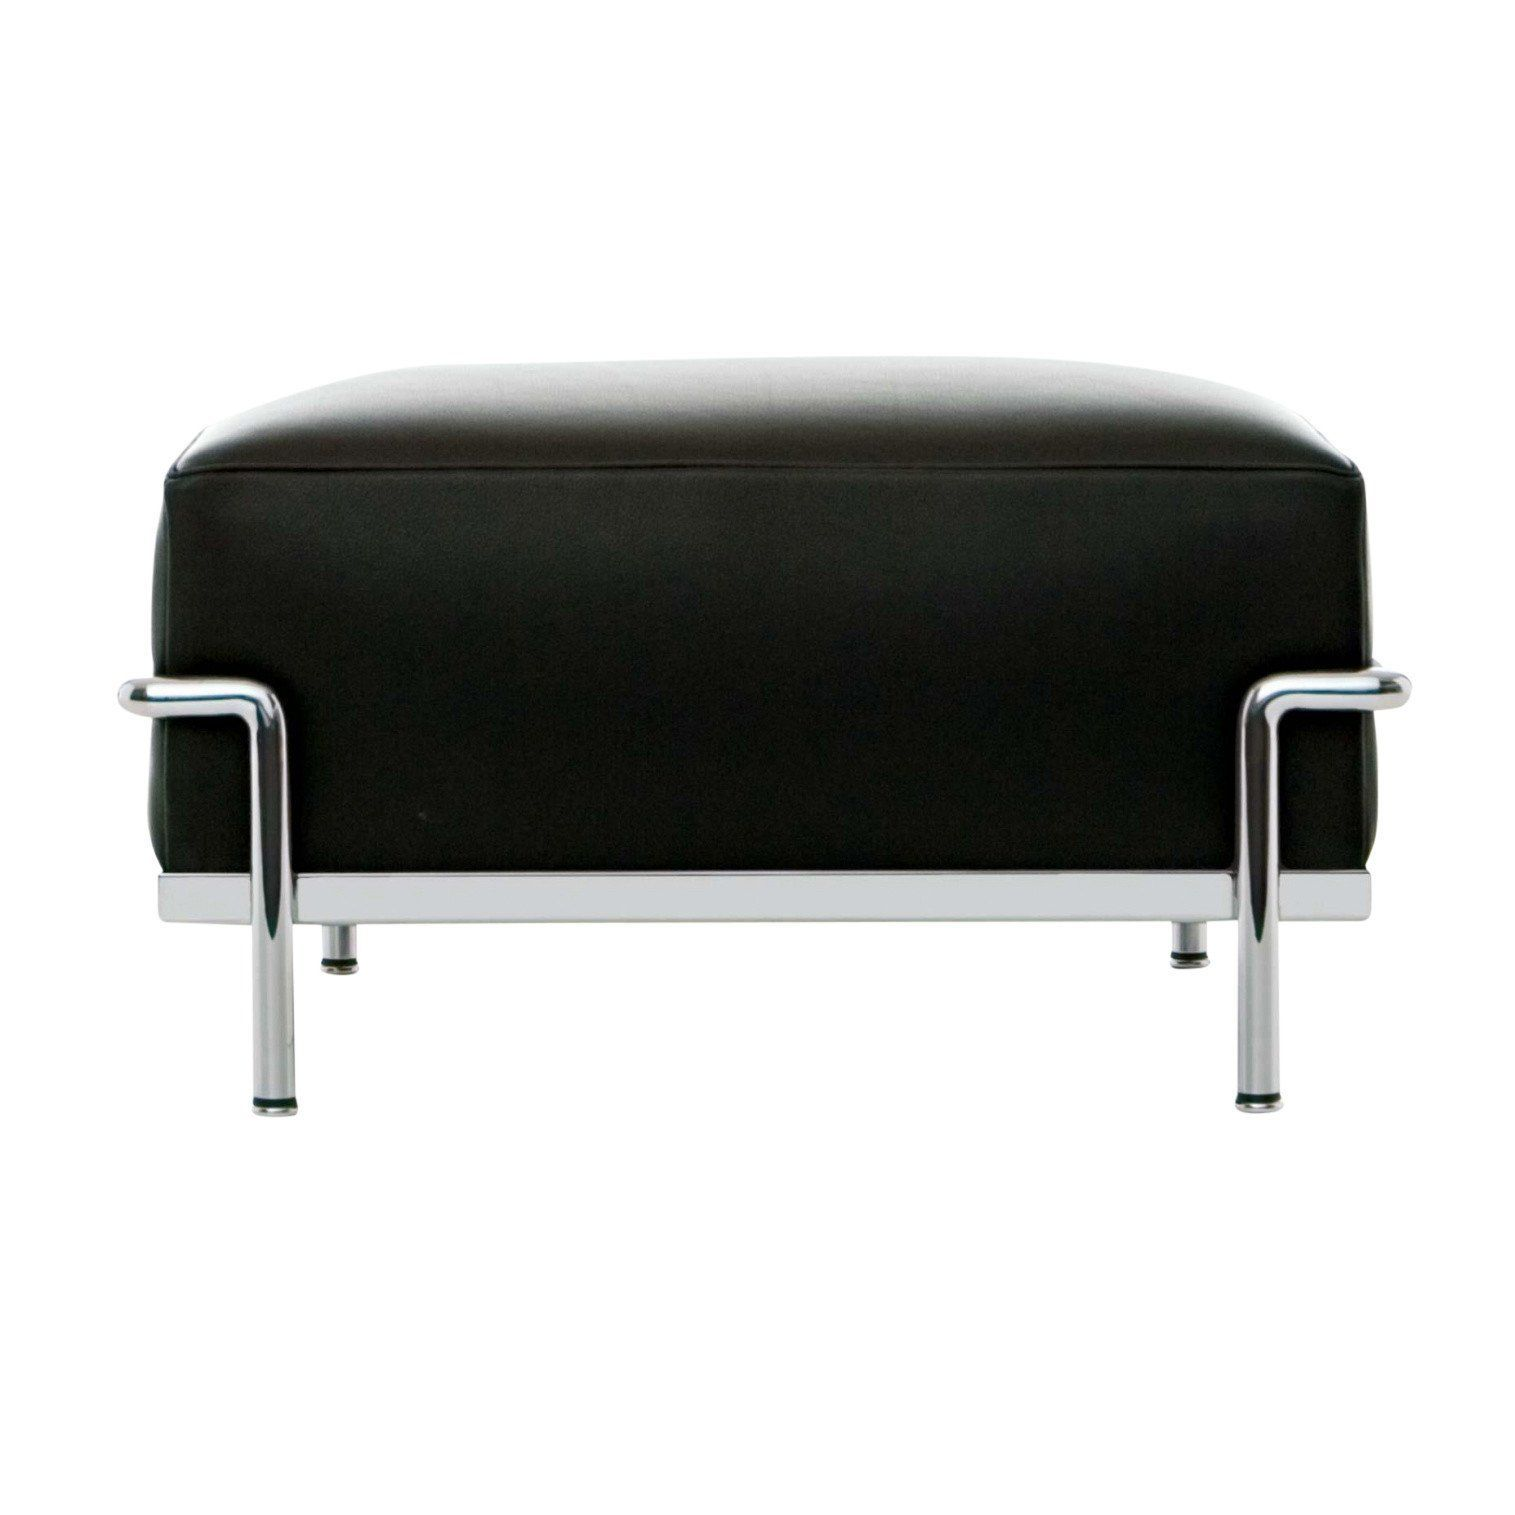 Cassina Le Corbusier LC2 - Tabouret Cassina | AmbienteDirect